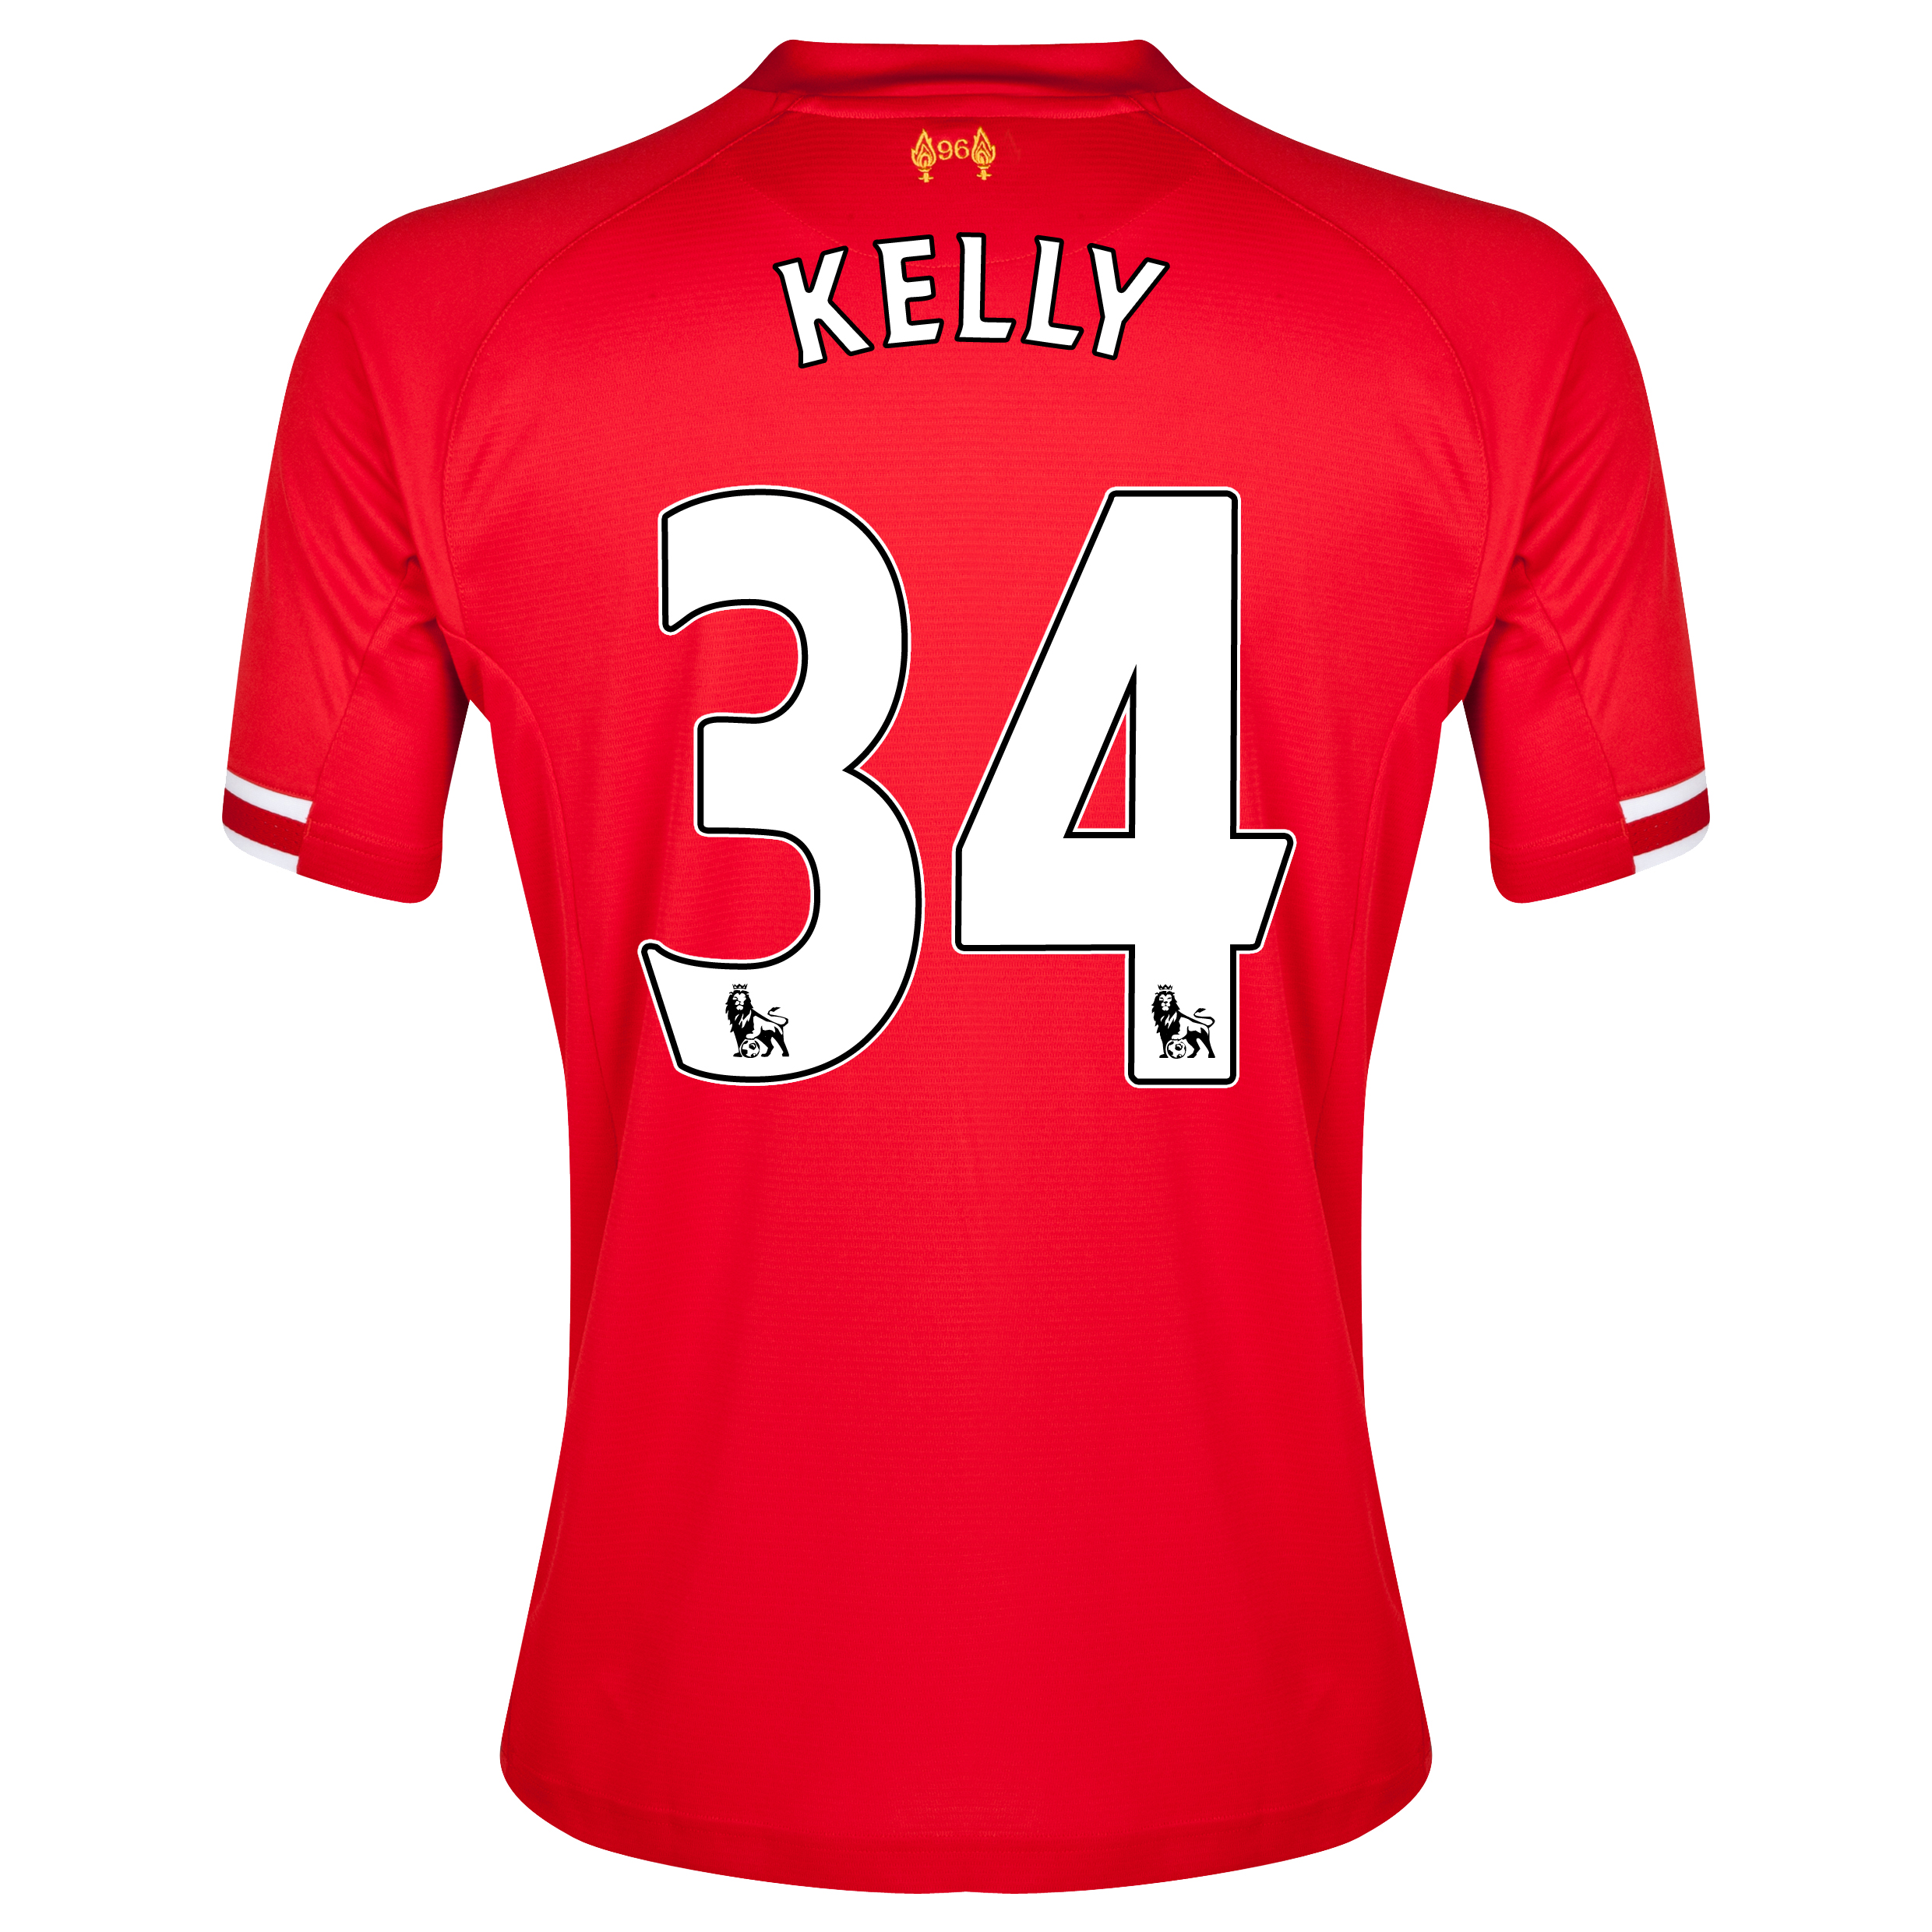 Liverpool Home Shirt 2013/14 with Kelly 34 printing